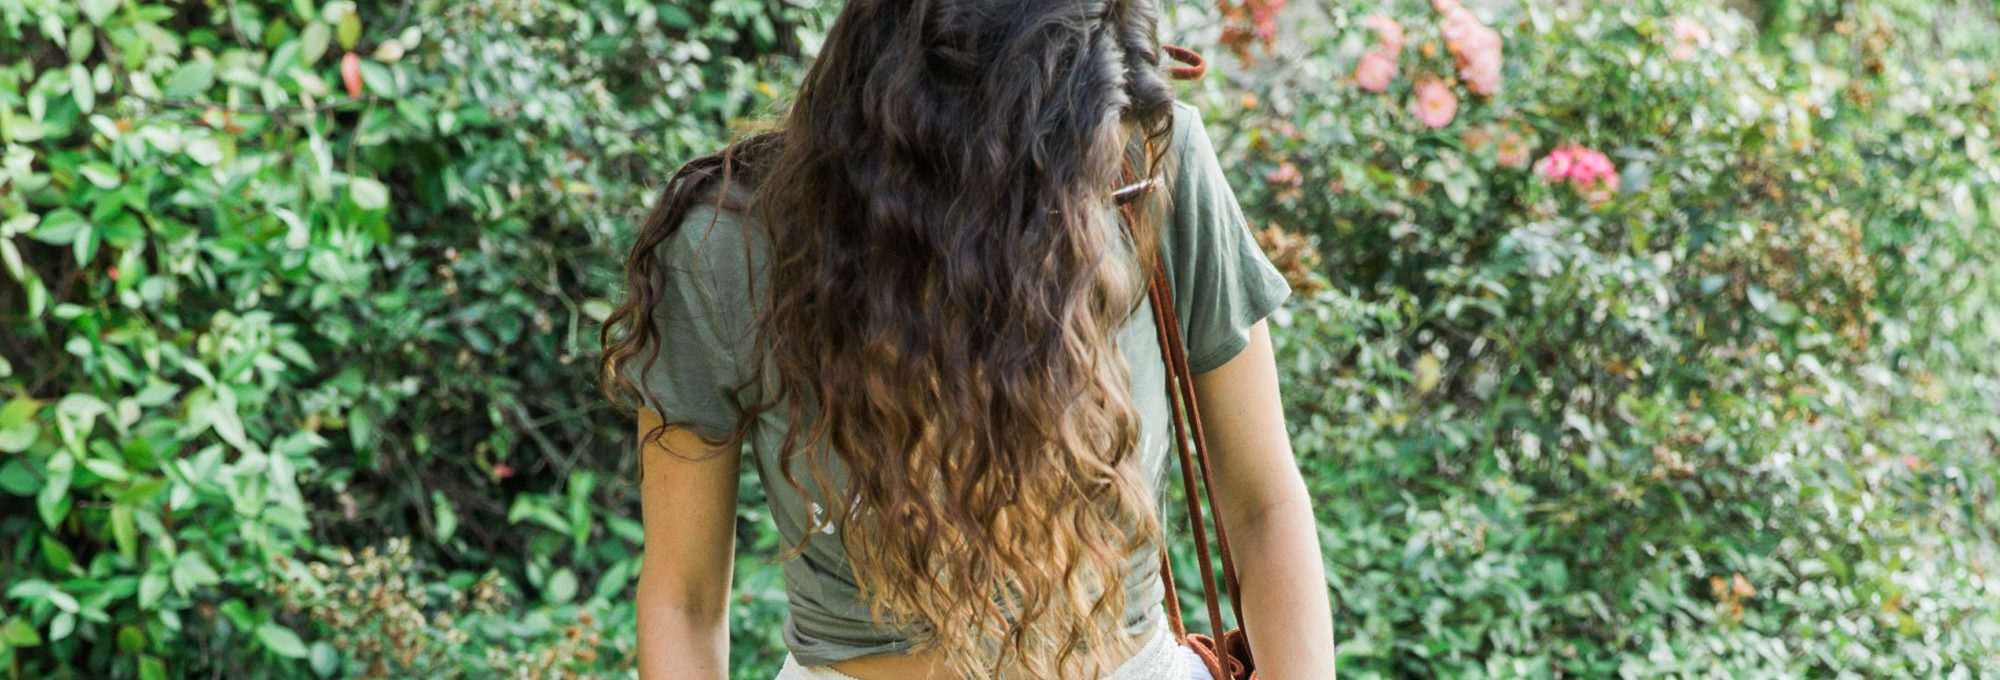 curly hair, natural curls, best beauty products for naturally curly hair, the best beauty brands for natural curls, how to wear your hair curly, natural hair tips, pravana, kevin.murphy, redken curvaceous